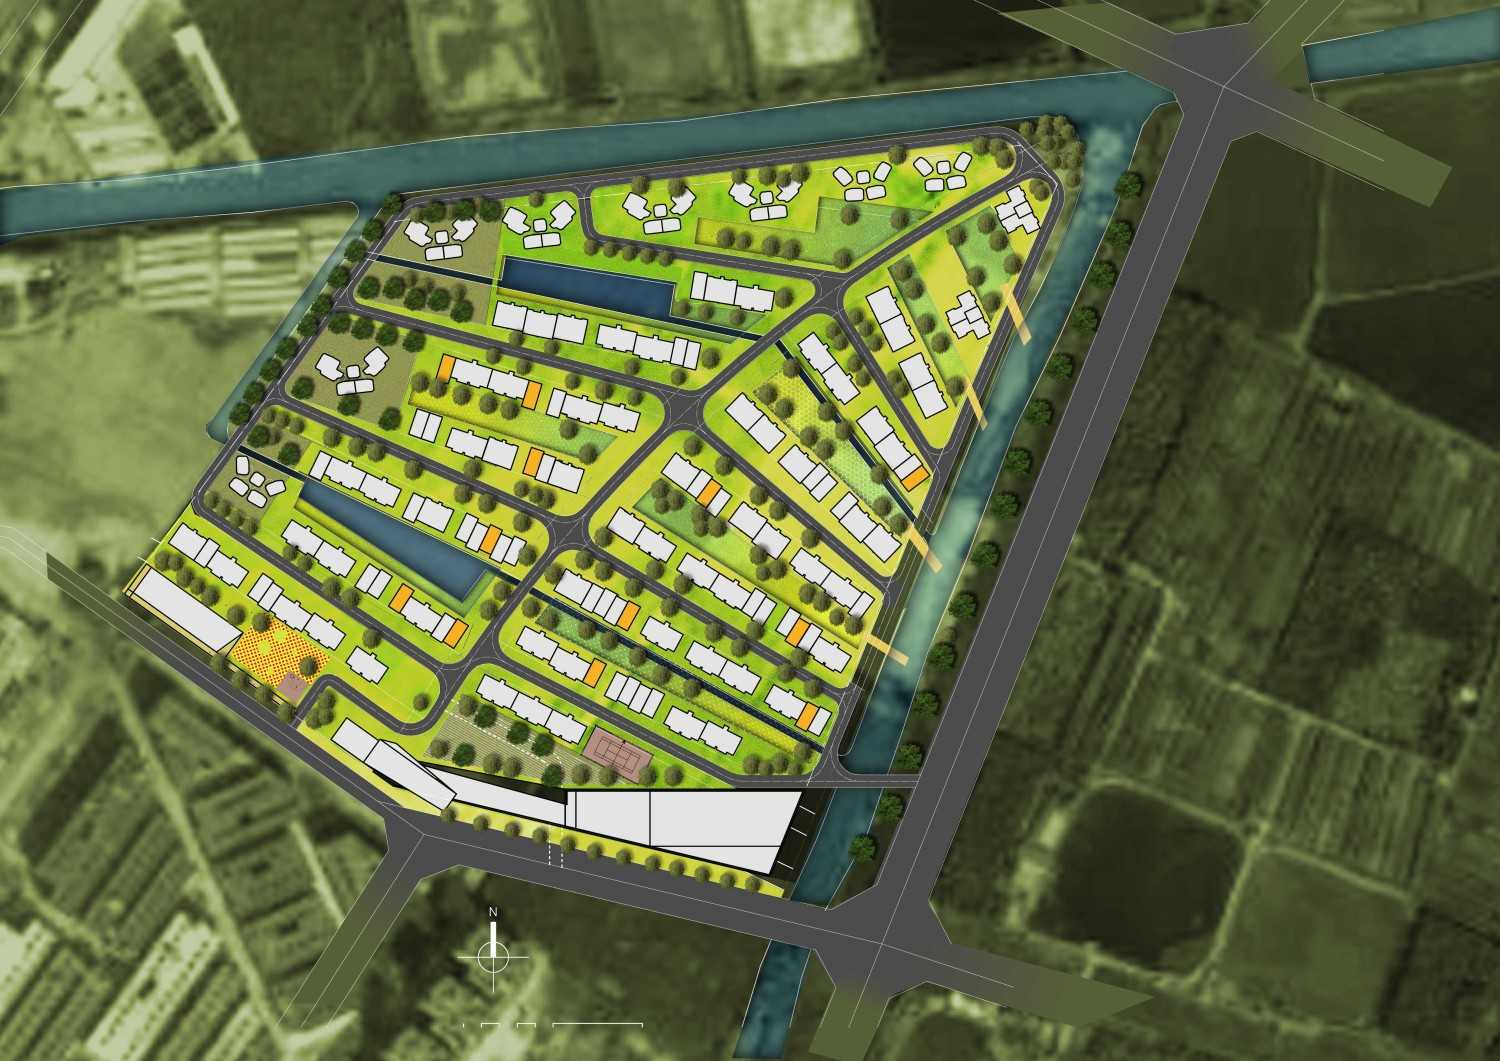 Tau Architect Zhuhai Residential Development Zhuhai,china Zhuhai,china P-Masterplan-Colour Kontemporer 13871